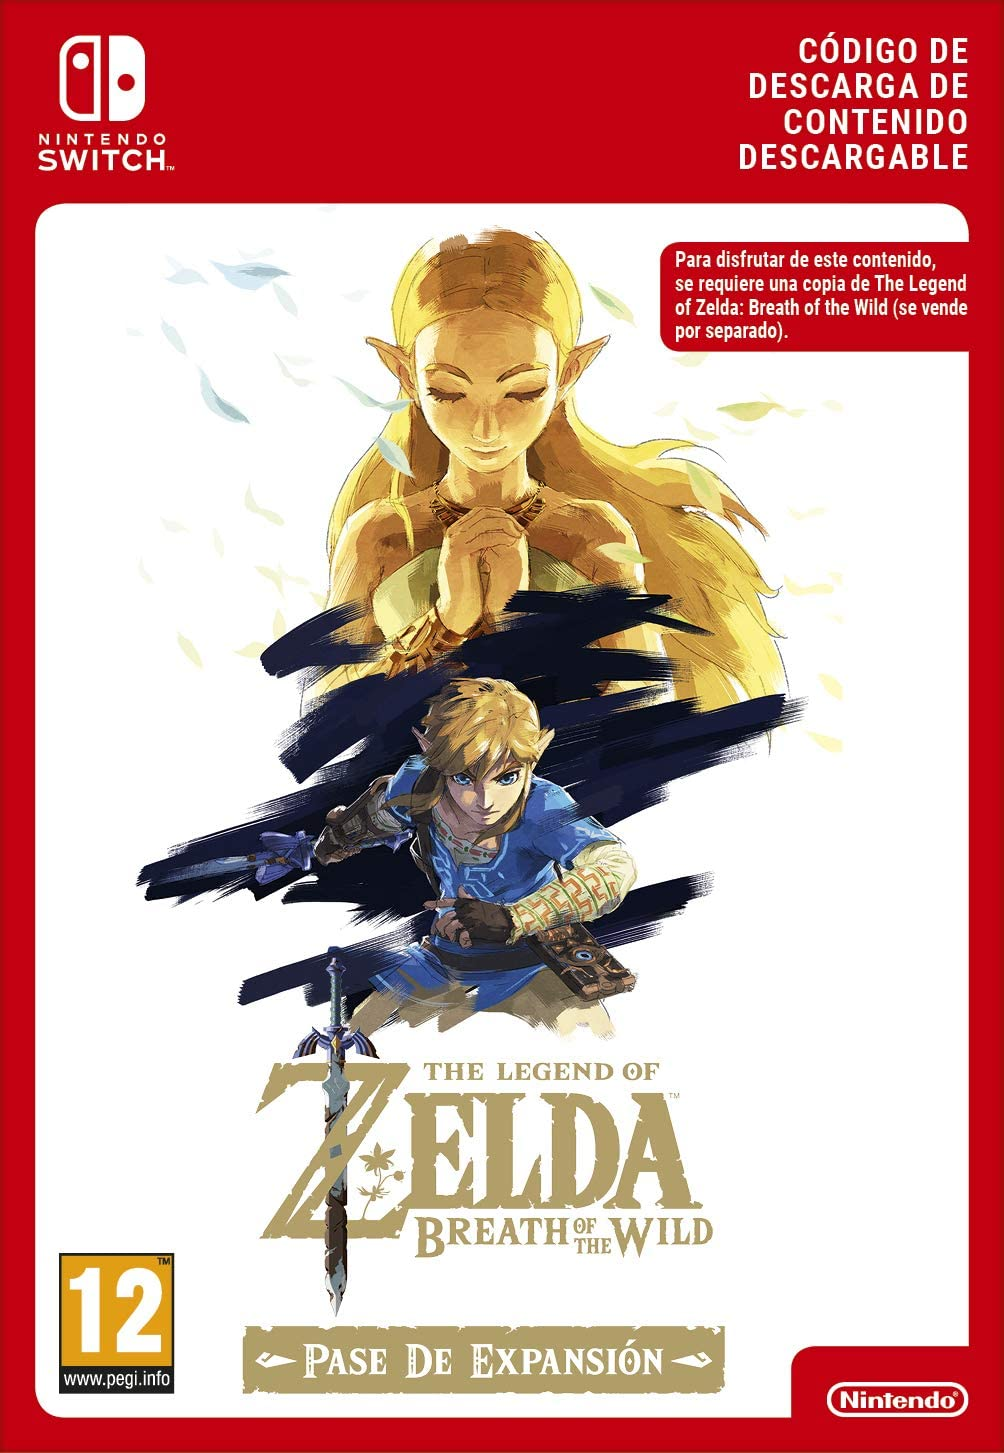 Zelda: Breath of the Wild Expansion Pass DLC | Nintendo Switch - Código de descarga: Amazon.es: Videojuegos